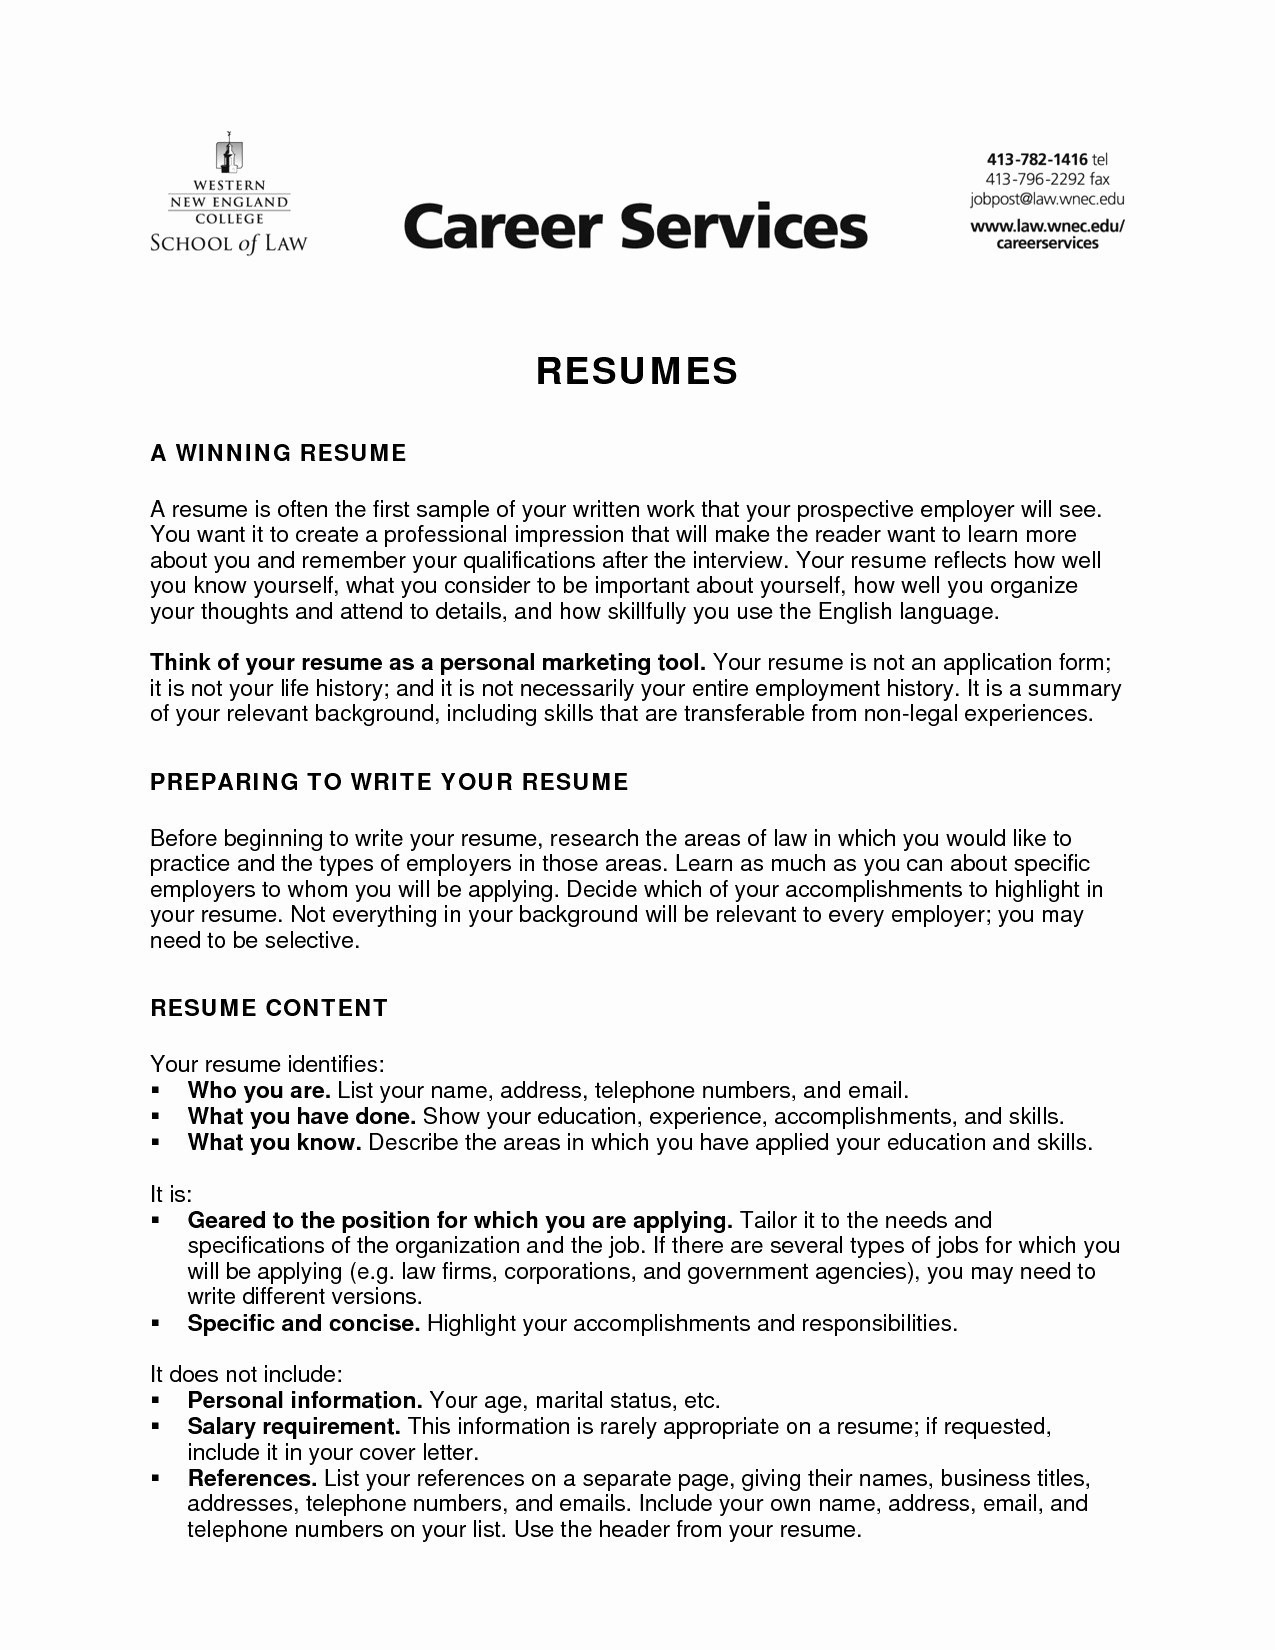 Award Winning Resumes - Inspirational Diesel Mechanic Job Description Resume Resume Ideas